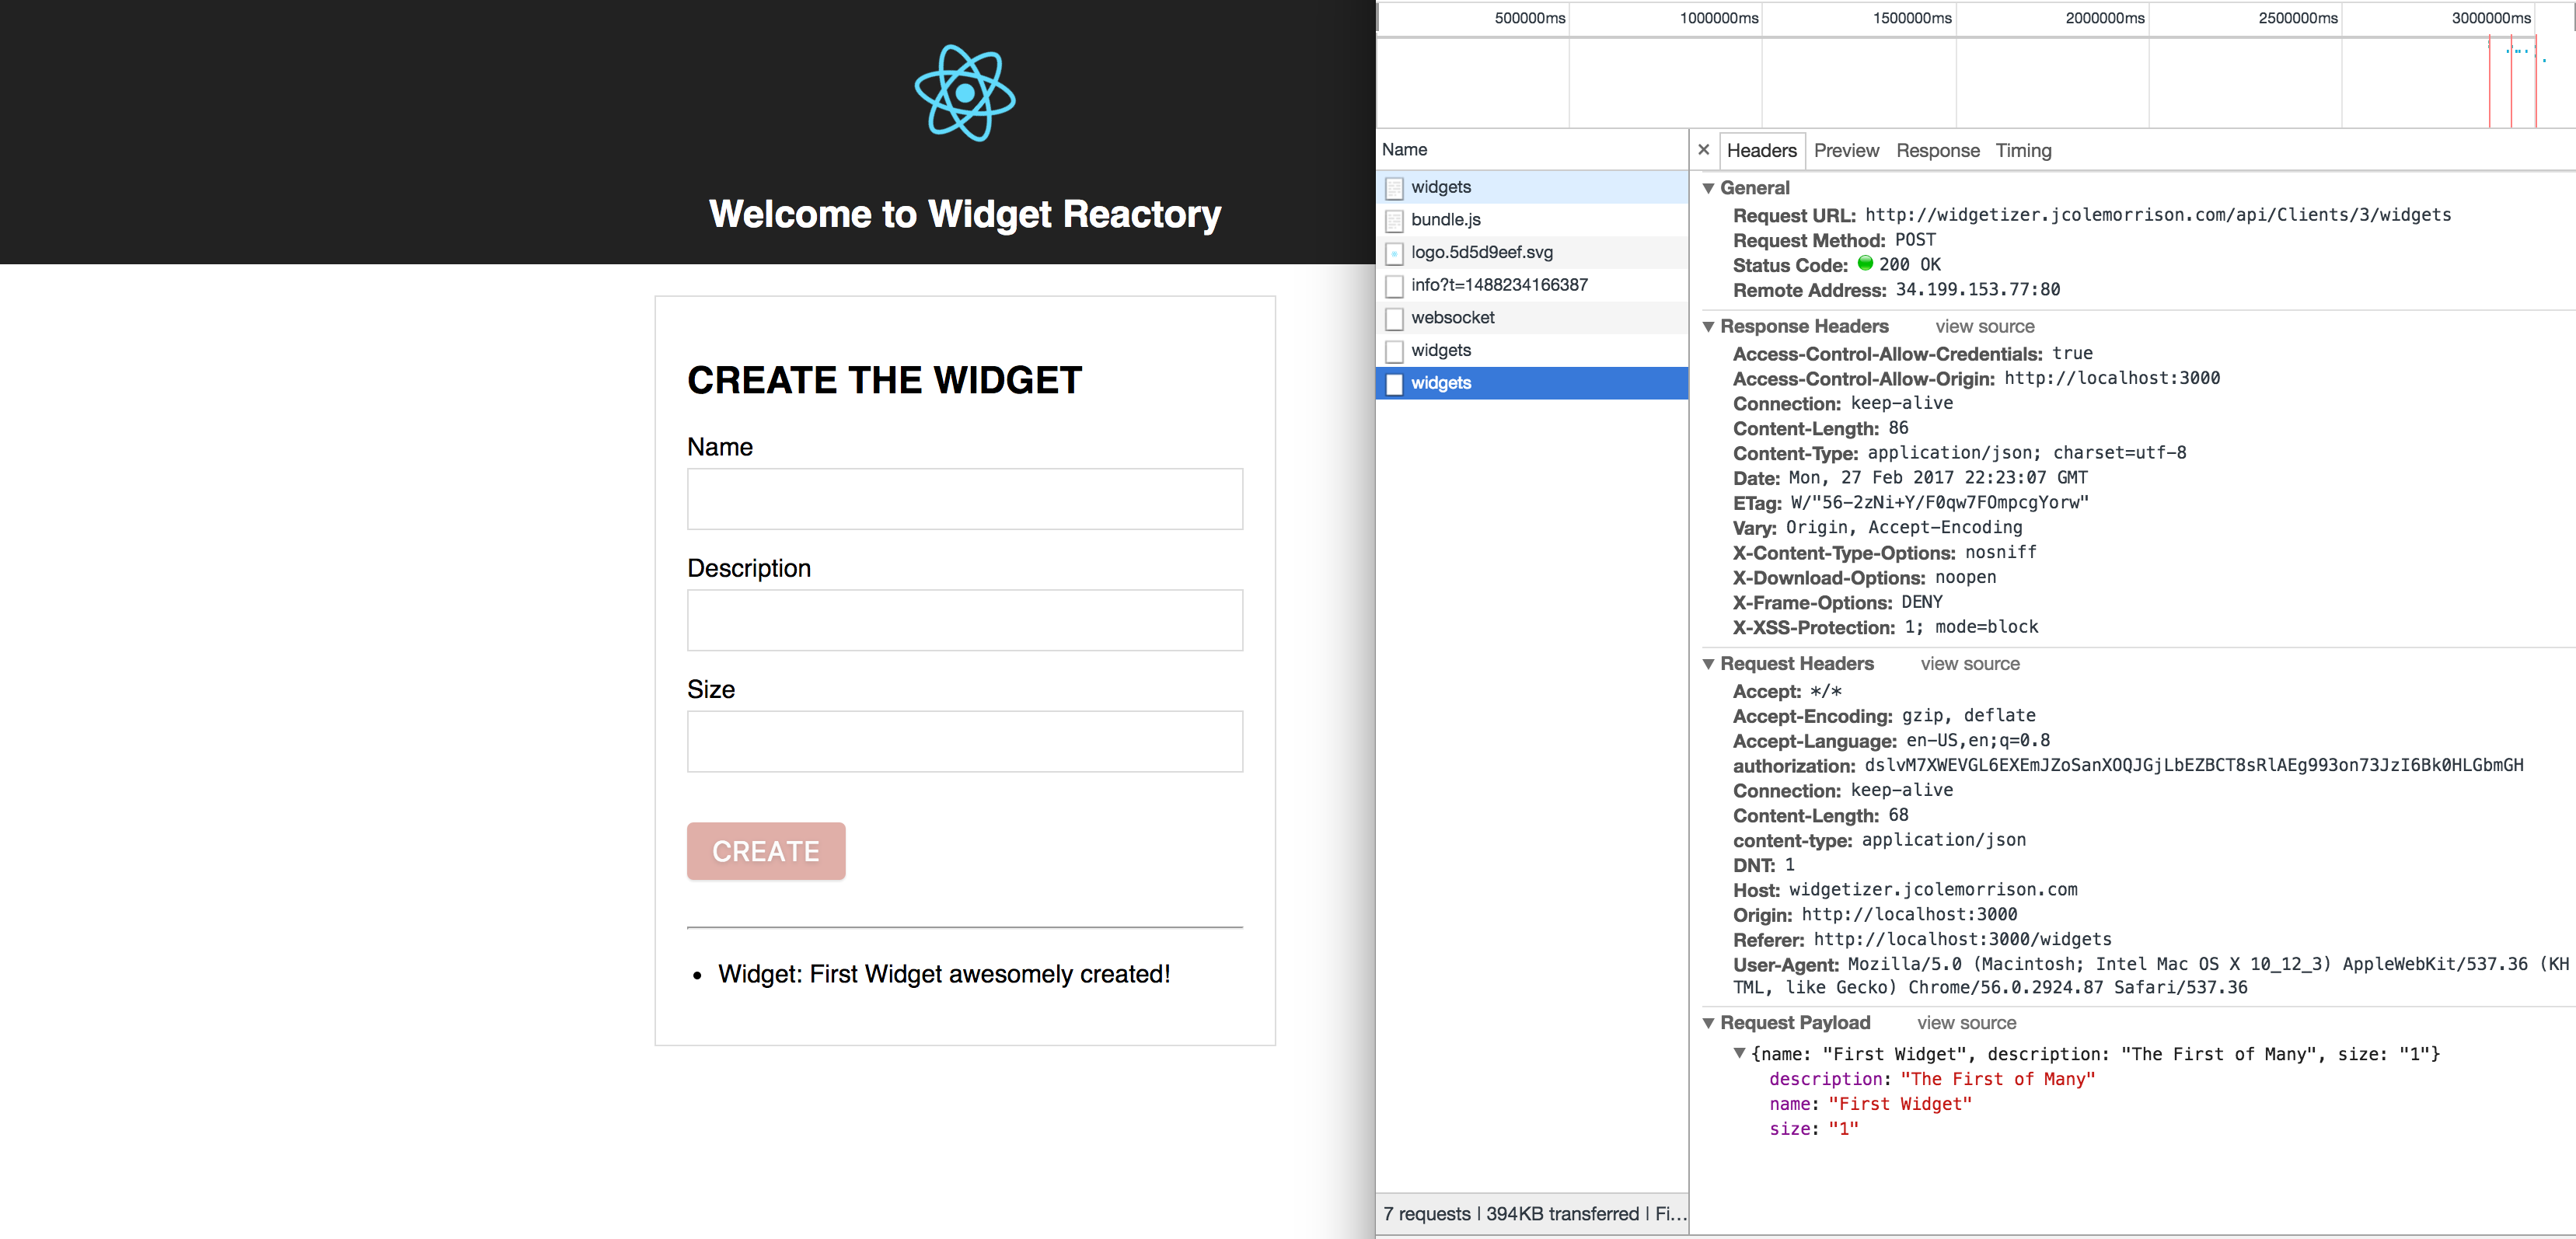 The Create Form Widget Request